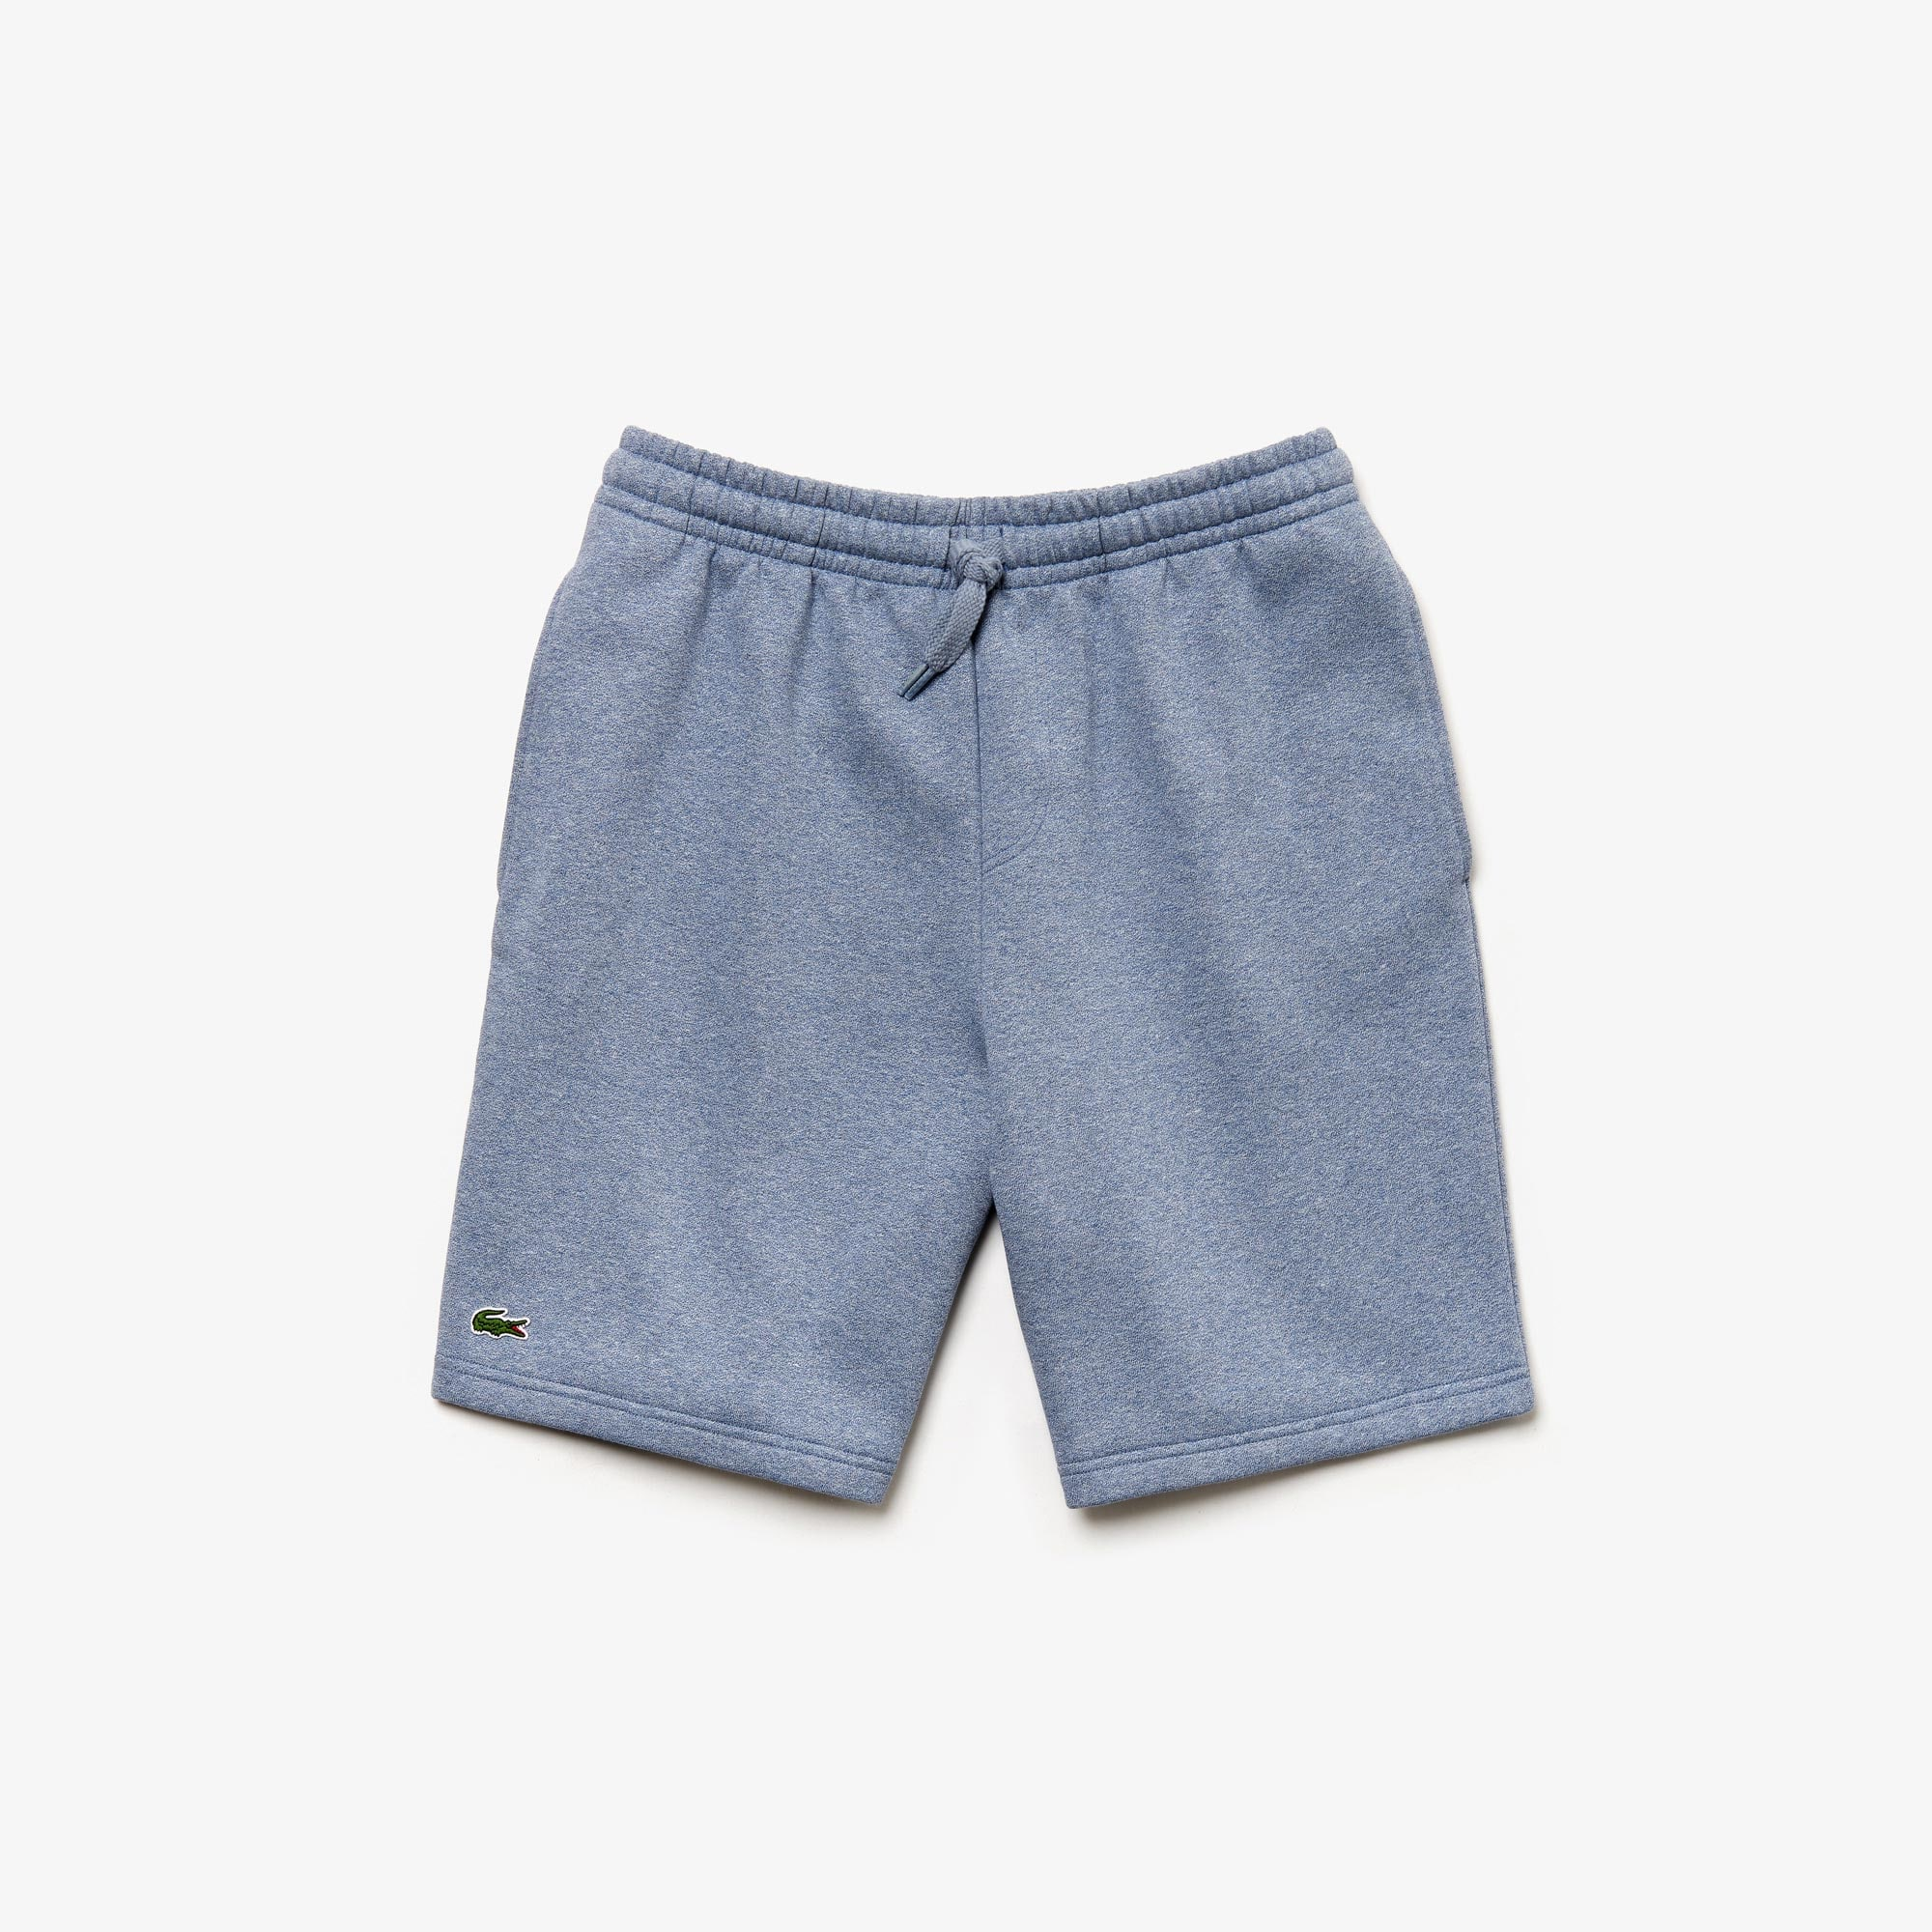 Men's Lacoste SPORT Tennis Fleece Shorts